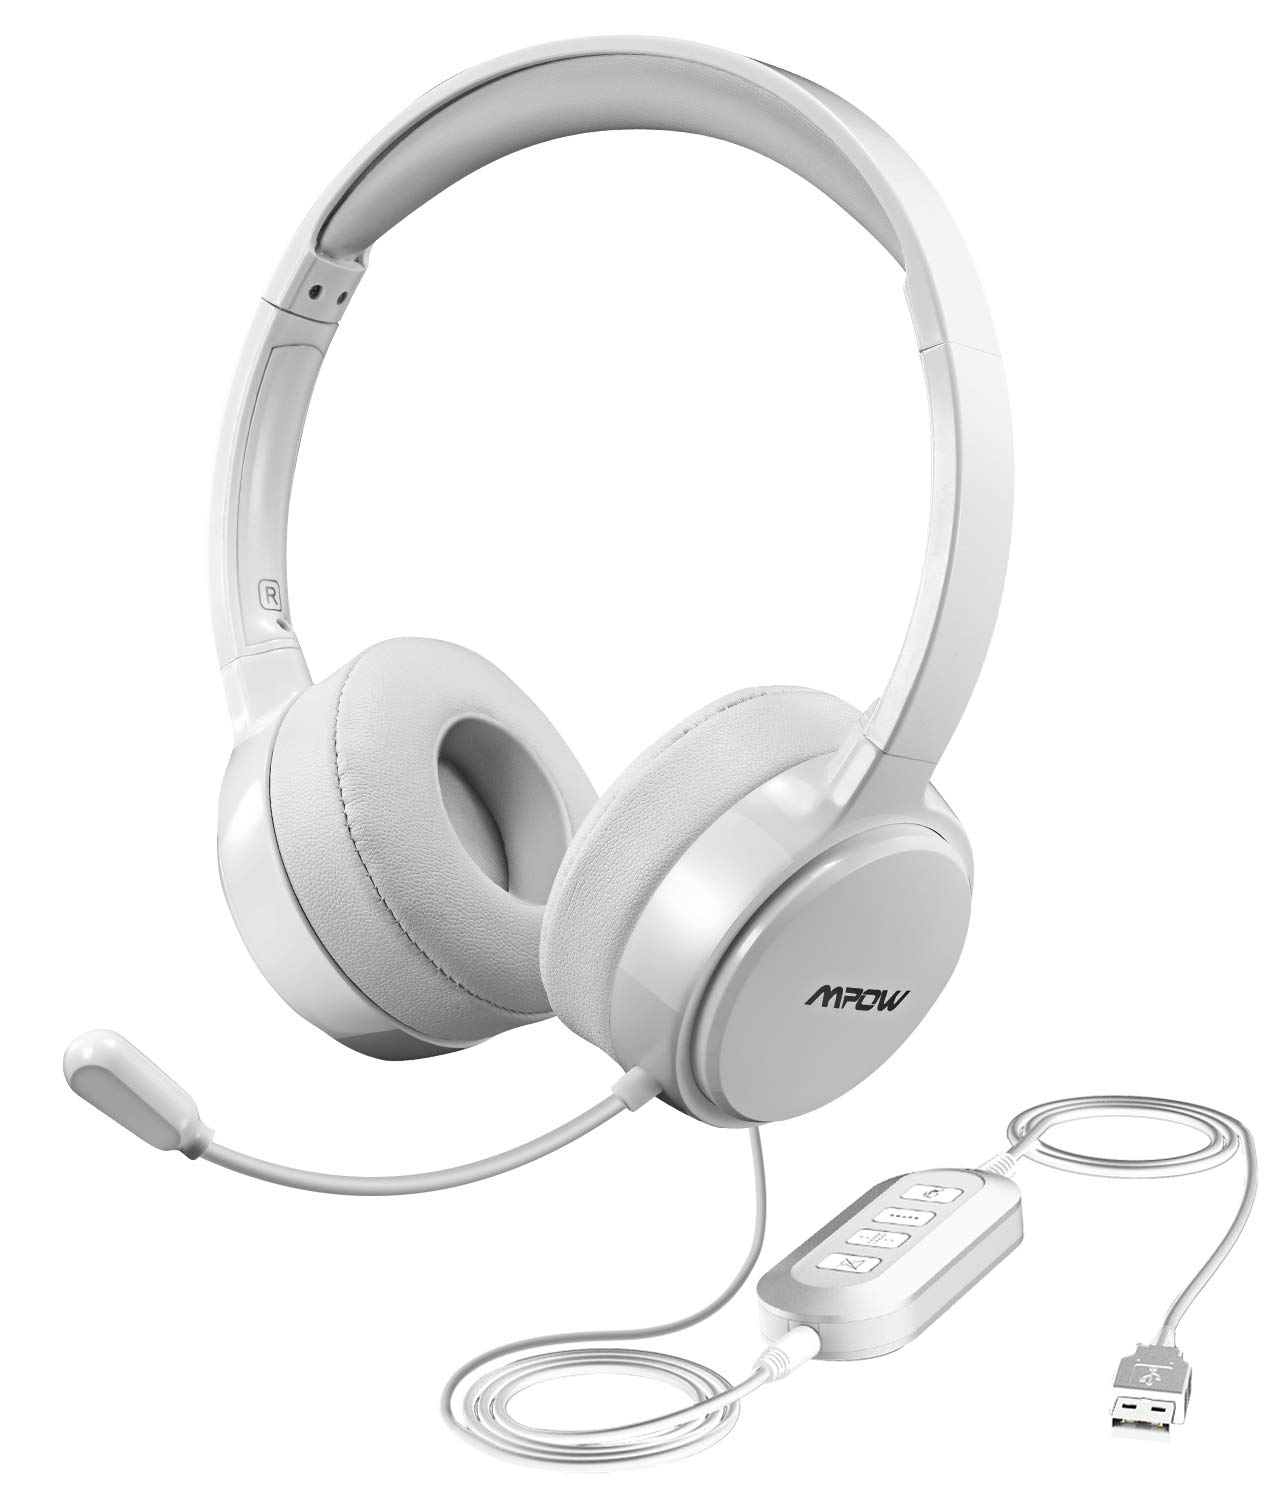 Mpow Upgraded USB Headset with 3.5mm Jack, Lightweight Computer Headset with Noise Cancelling Microphone, Comfy Earmuffs, Wired Headphones for PC, Skype, Phone PAMPPA071AB-USAS7